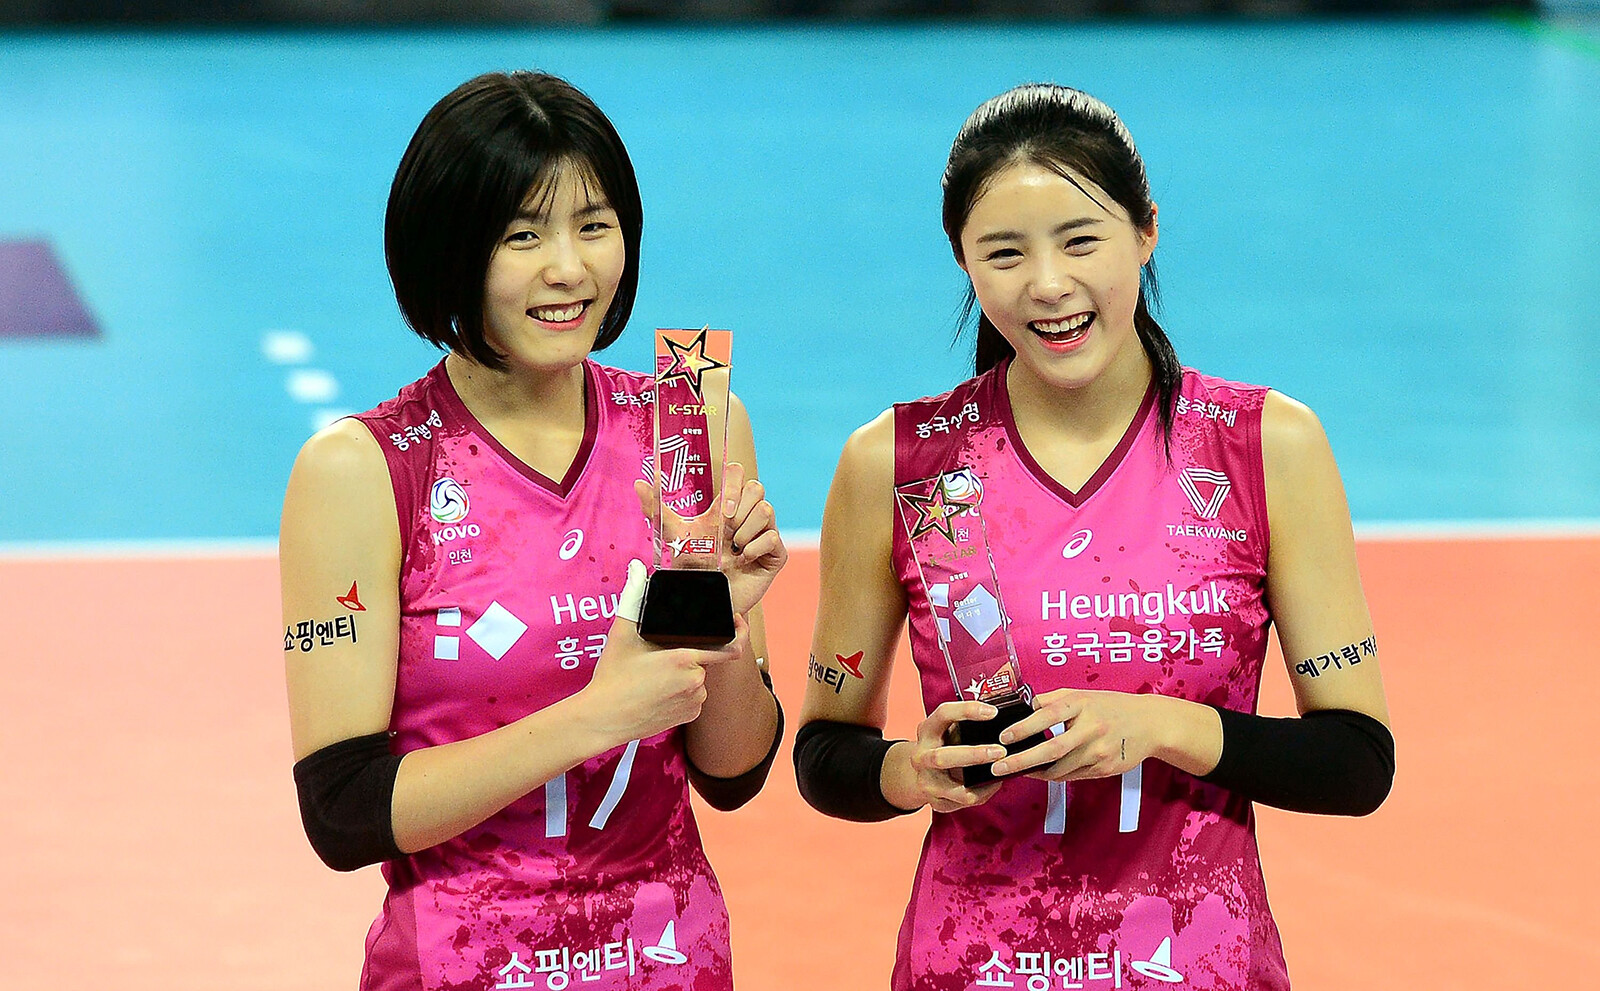 Caught in the midst of a bullying scandal, South Korean volleyball twins Lee Jae-yeong and Lee Da-yeong controversially sign for Greek club